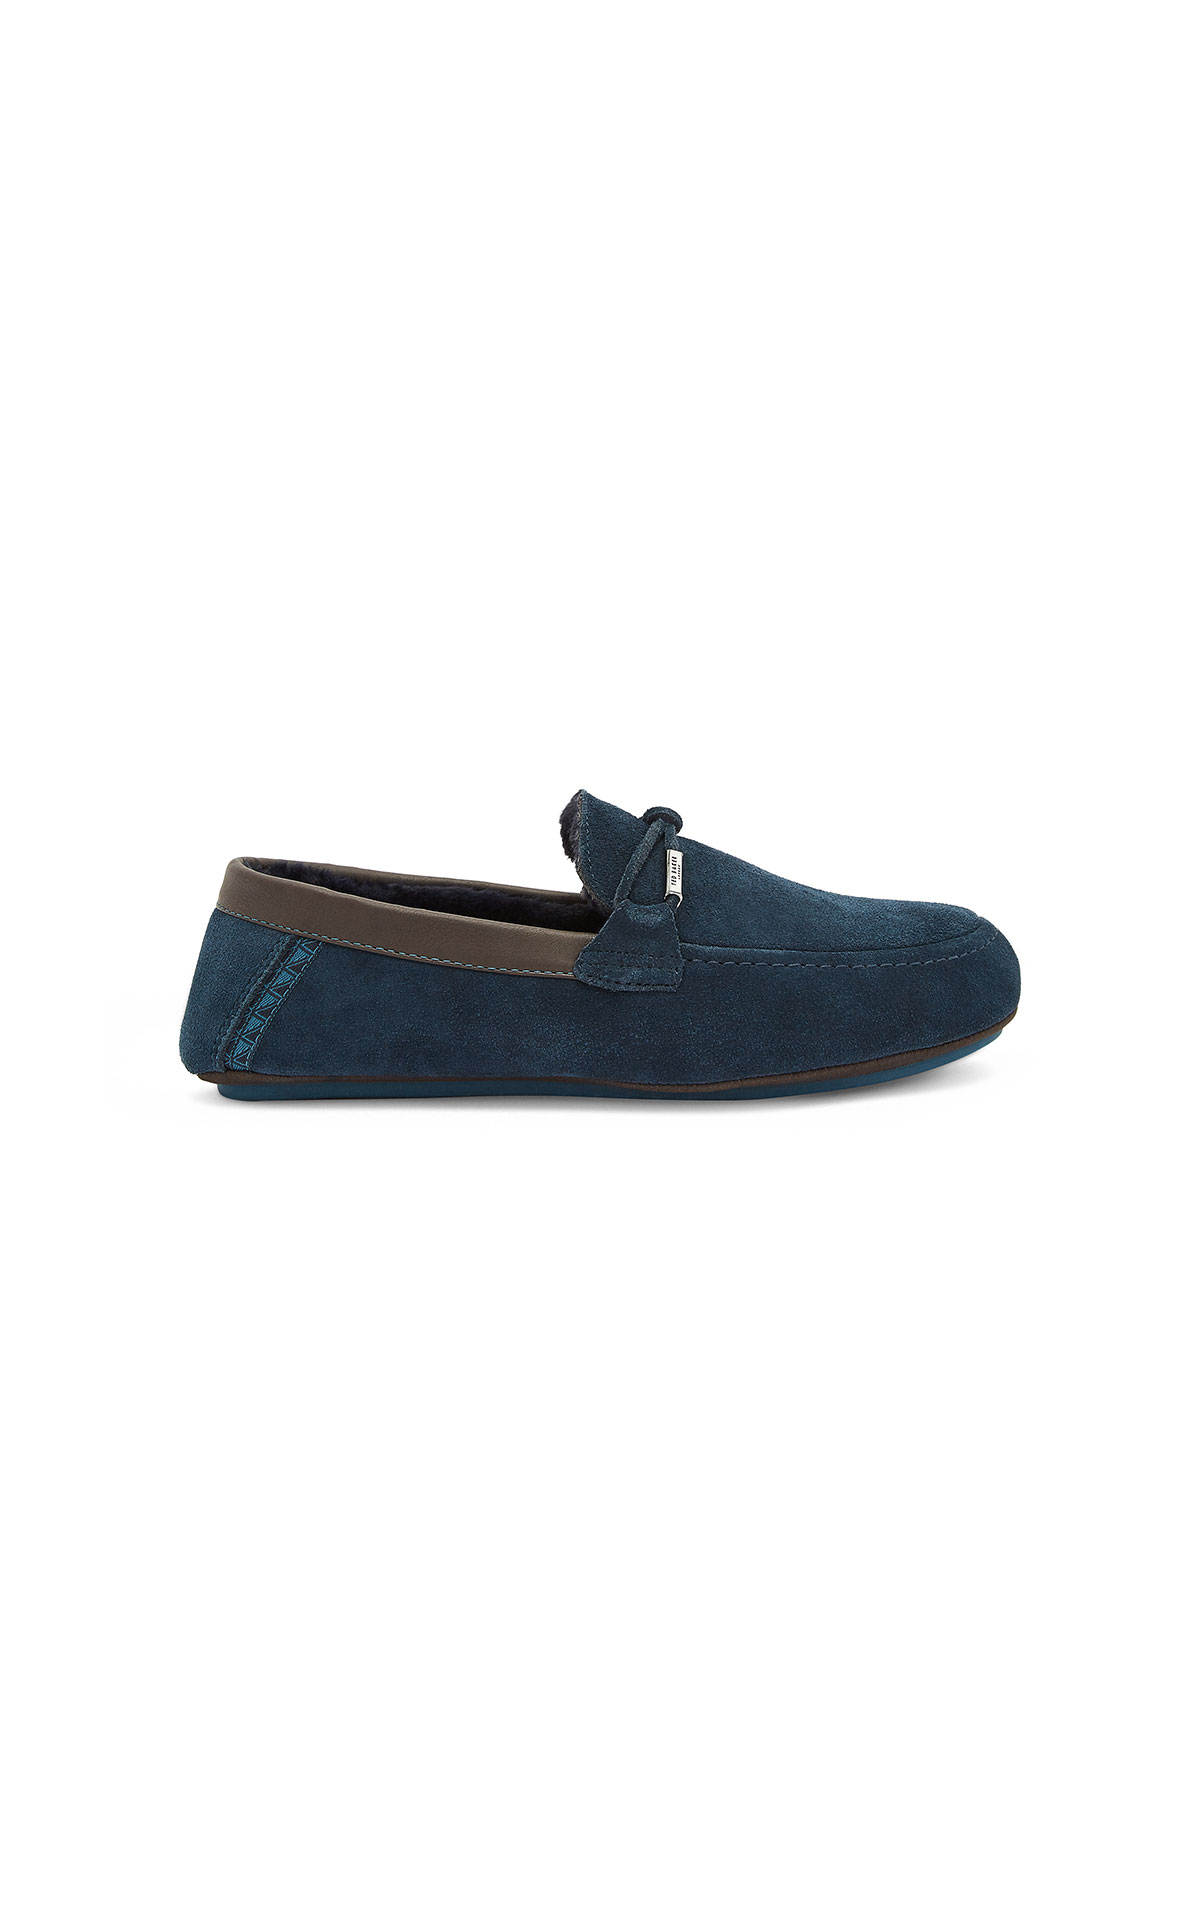 Ted Baker Suede Slippers at The Bicester Village Shopping Collection